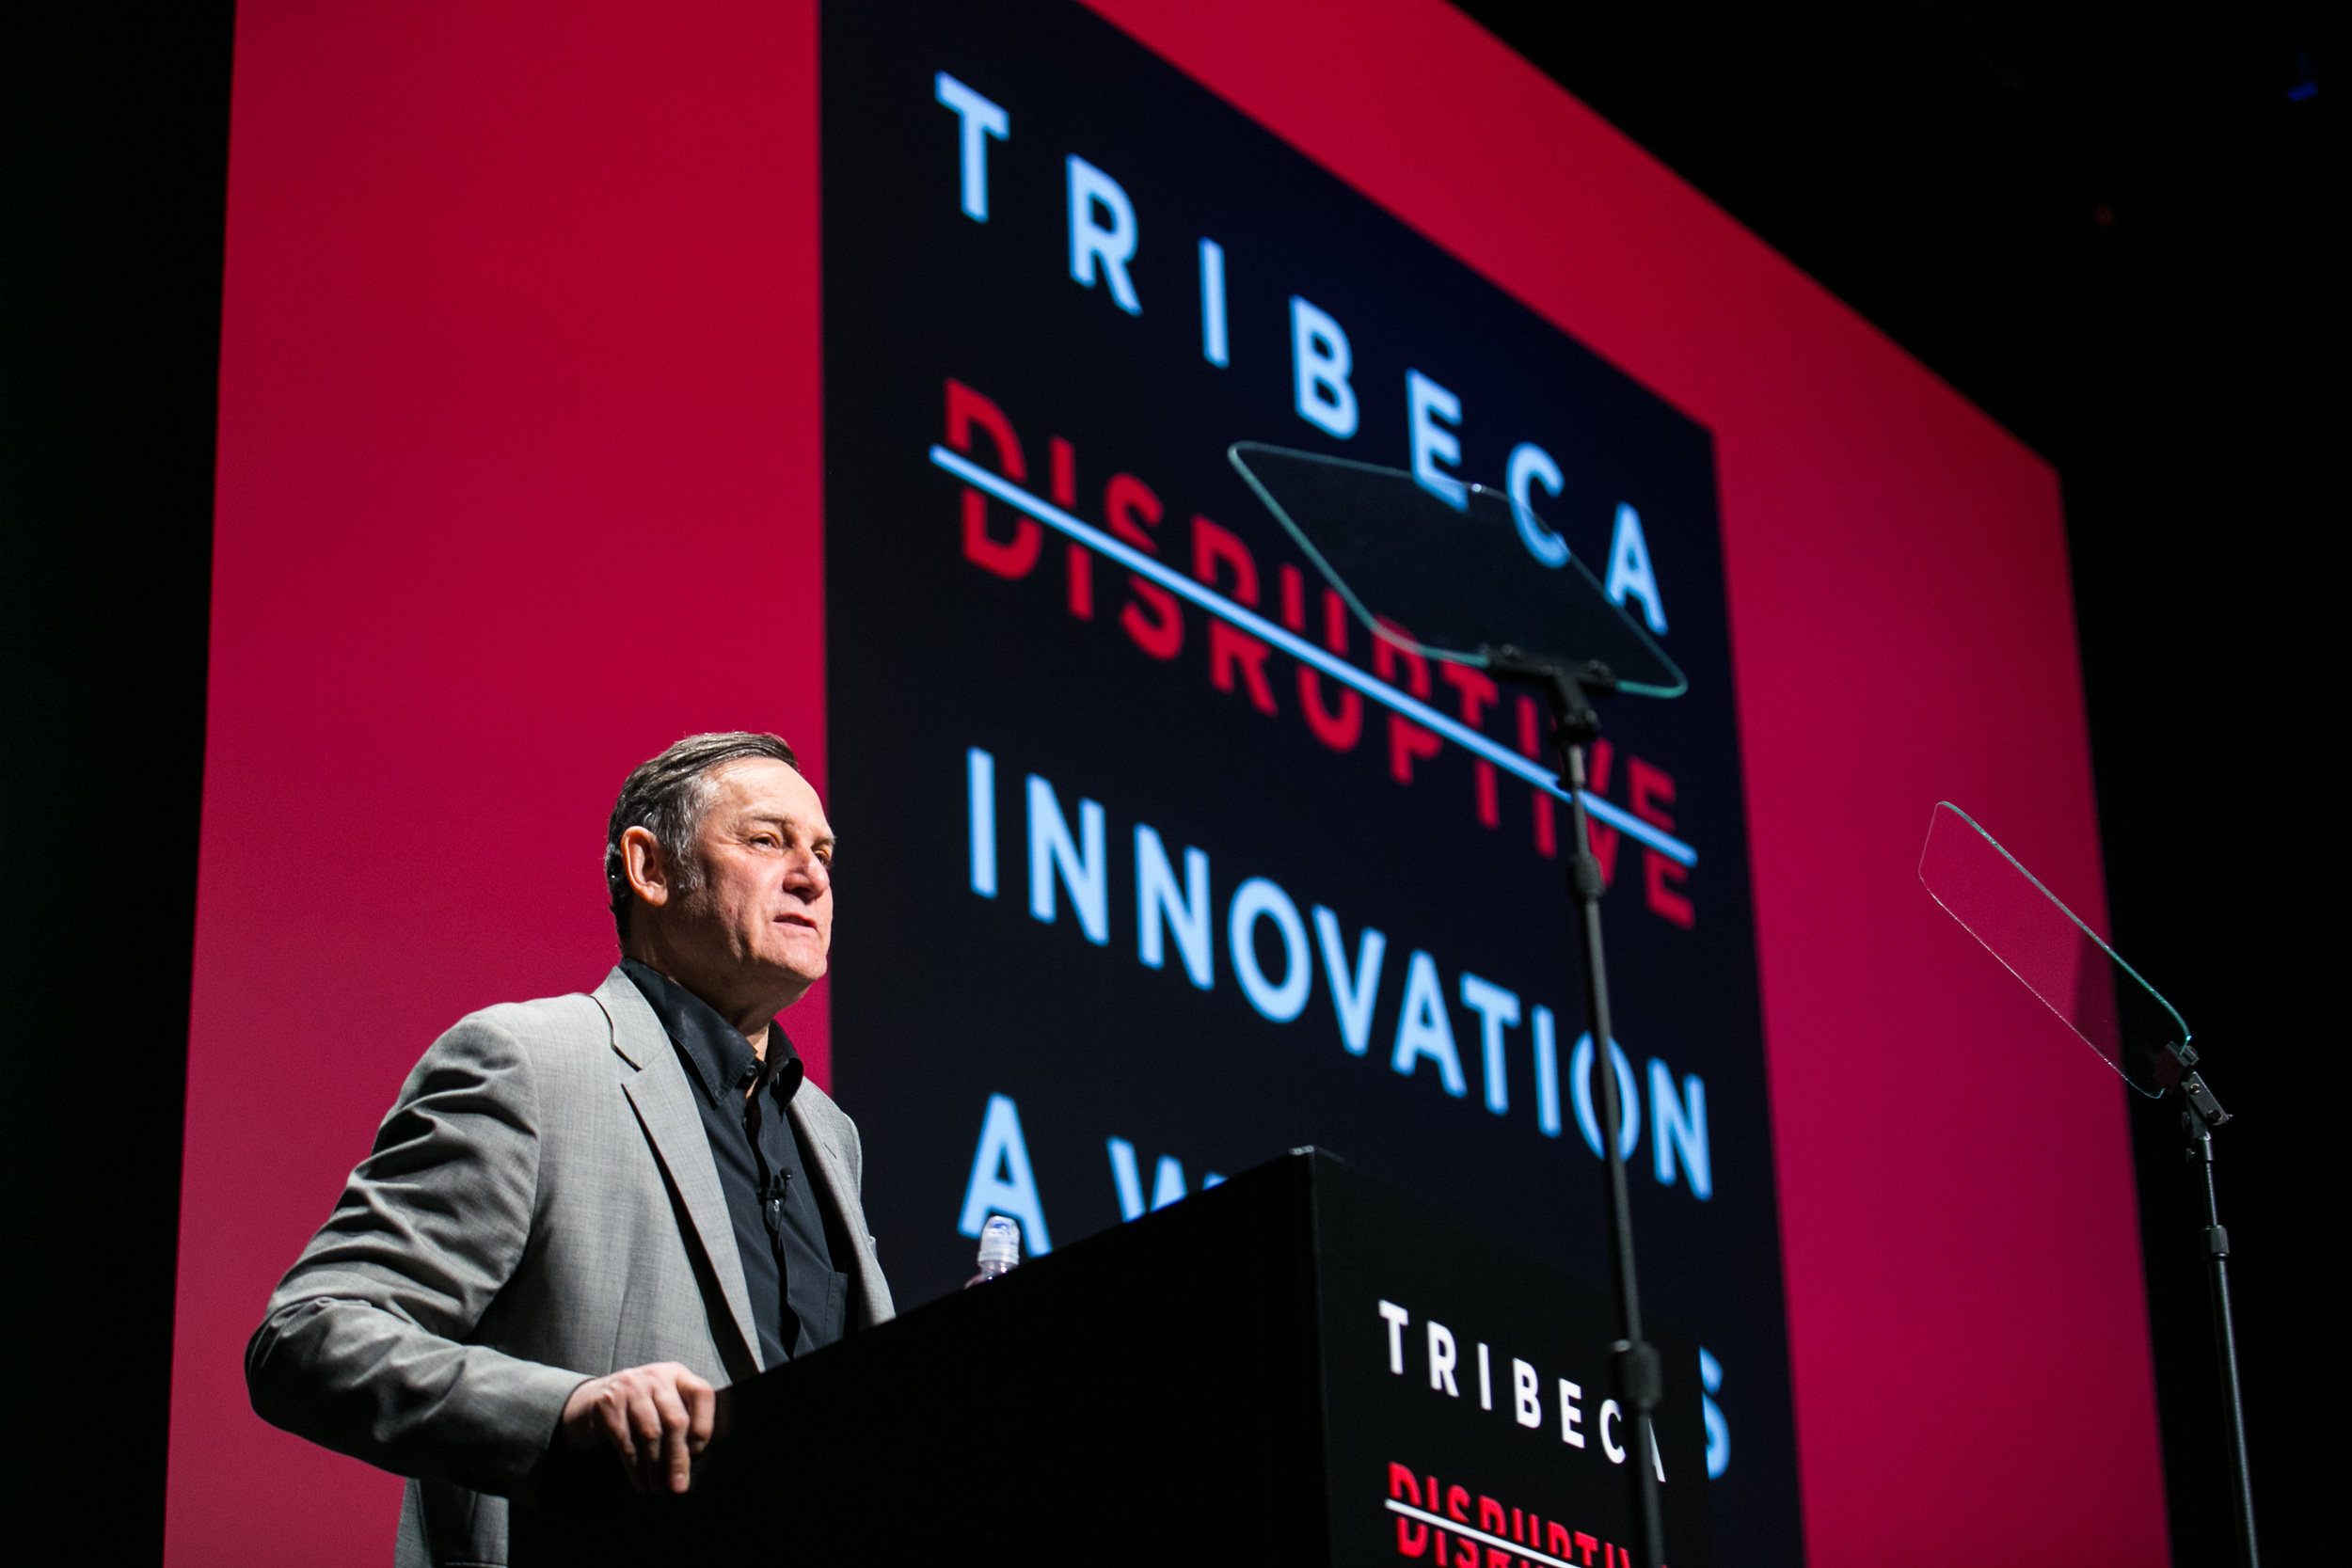 20150424-Tribeca Disruptive Innovation Awards-0324.jpg